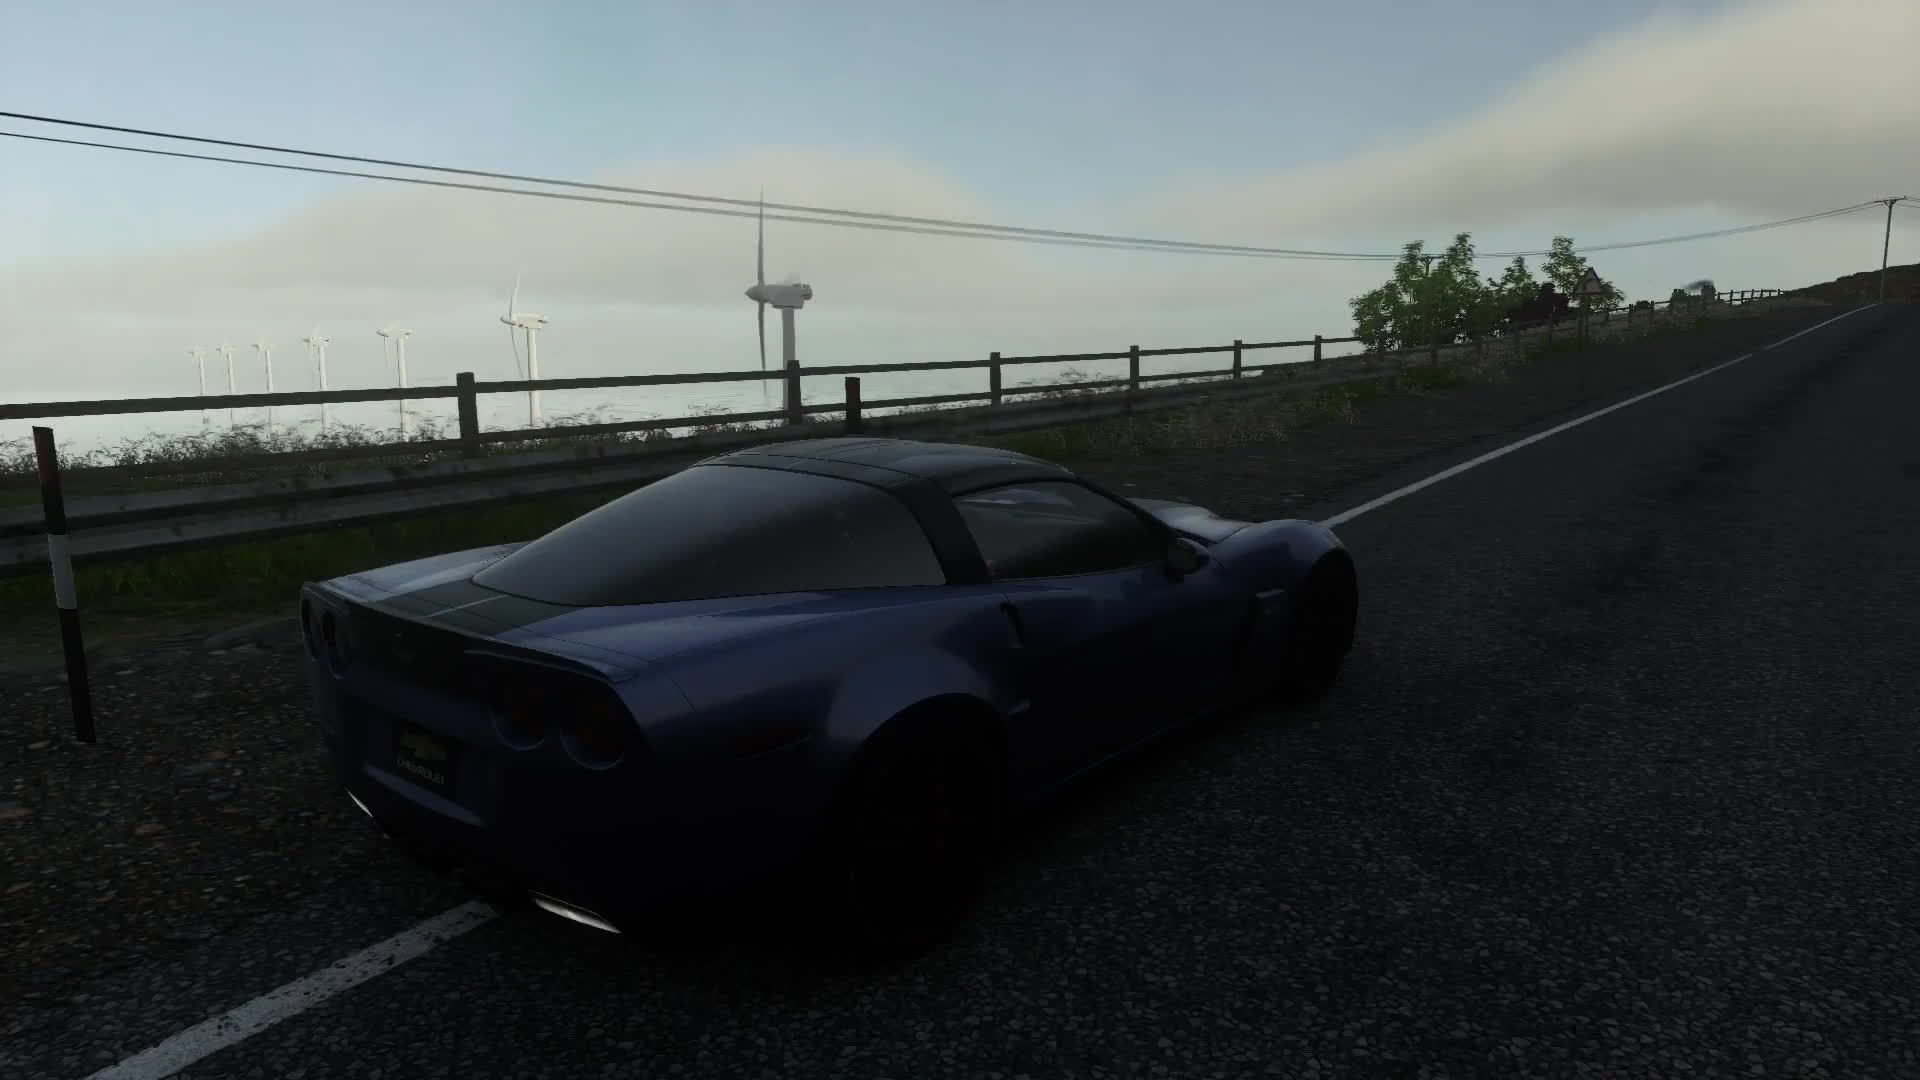 driveclub, playstation 4, ps4share, sony interactive entertainment, Driveclub #1 GIFs